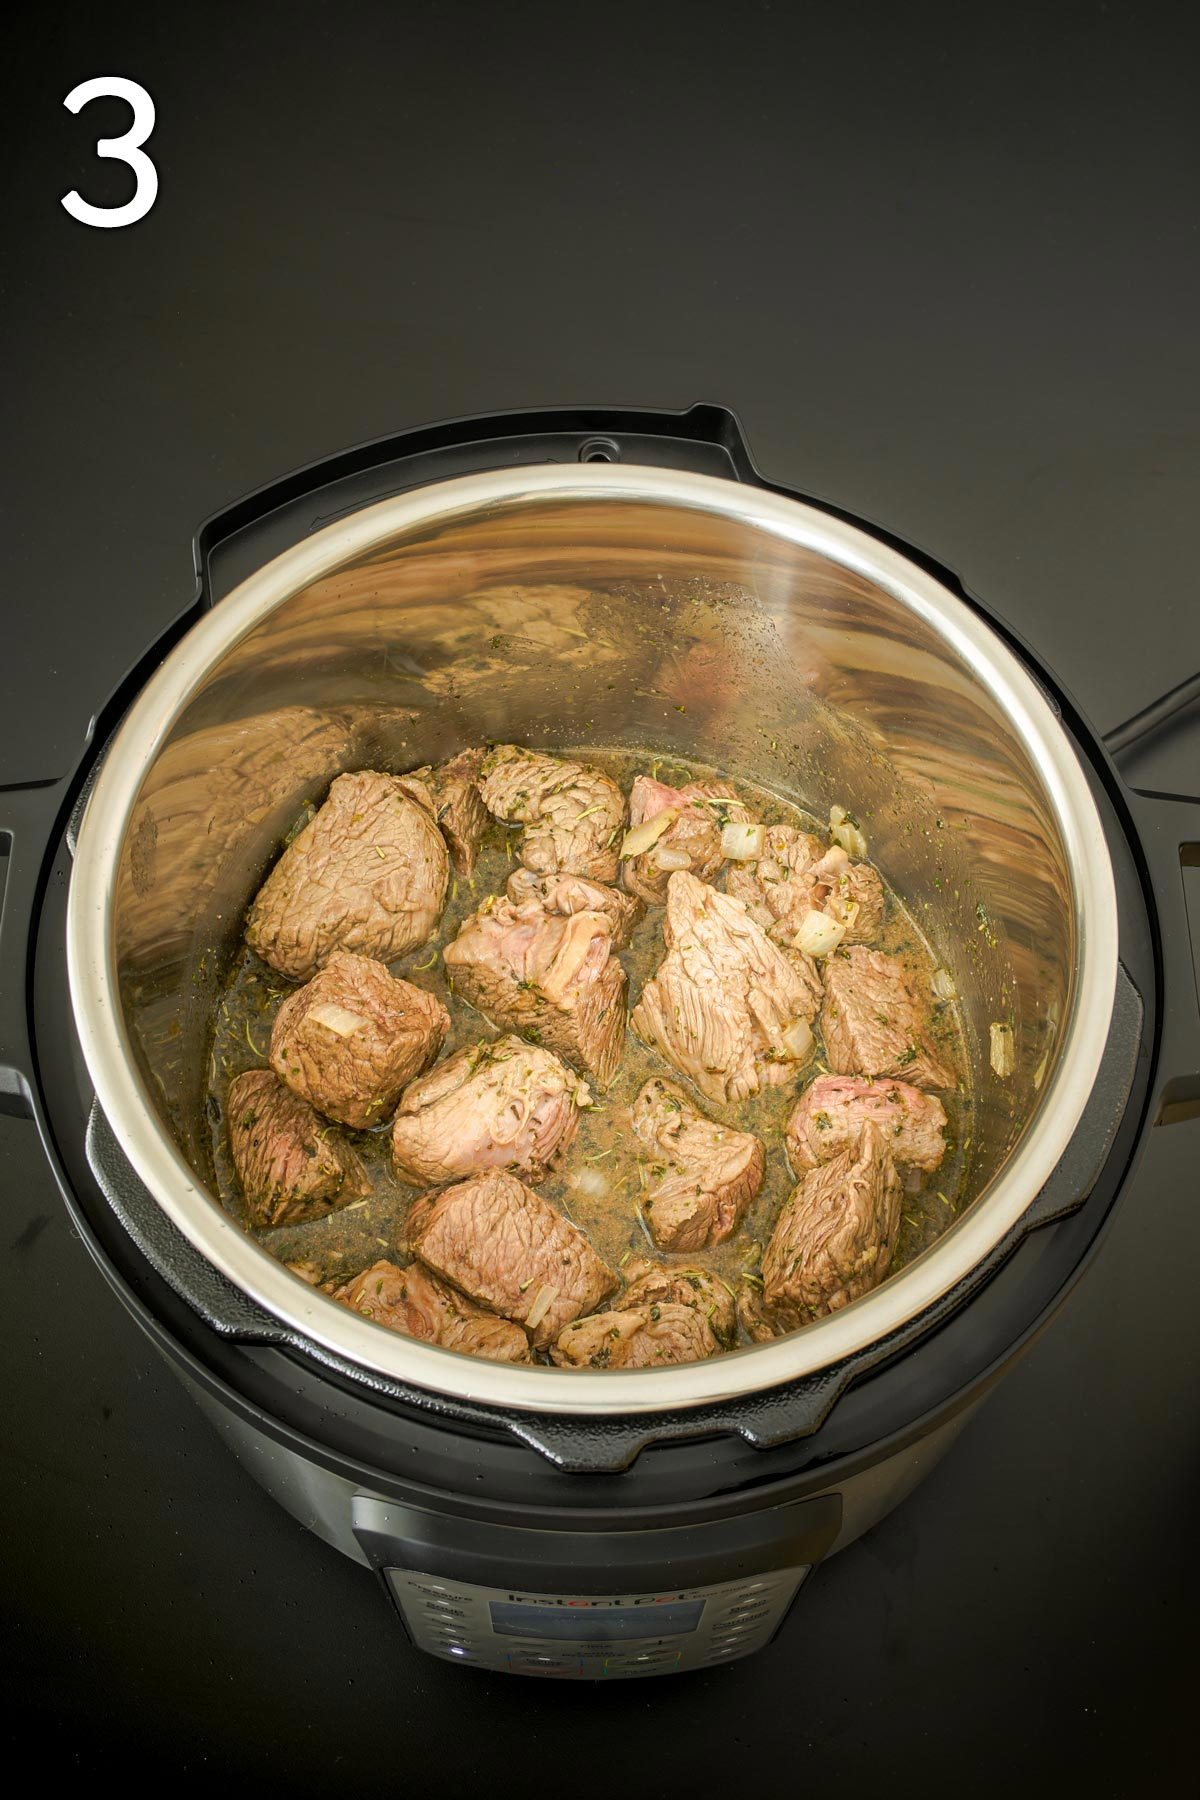 meat ready to cook in pot.